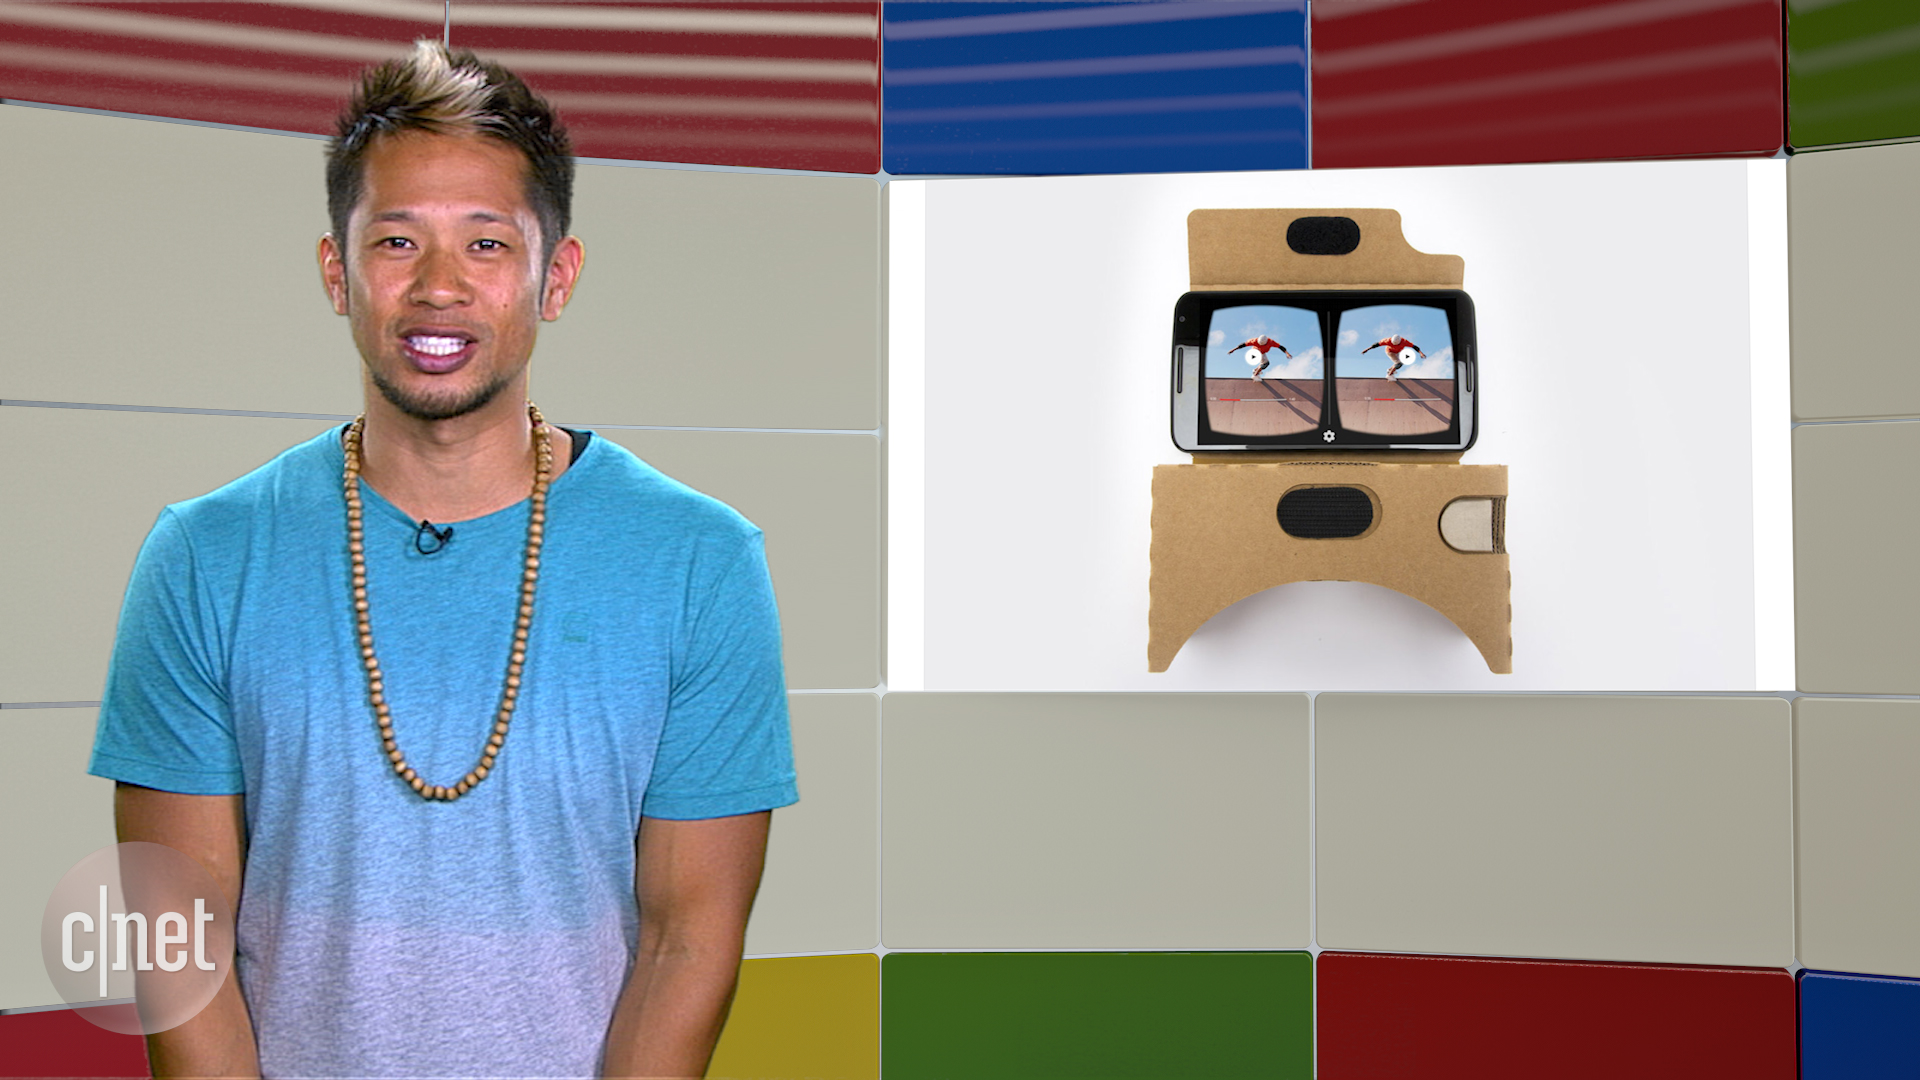 Video: The second Android N preview hints at VR coming soon